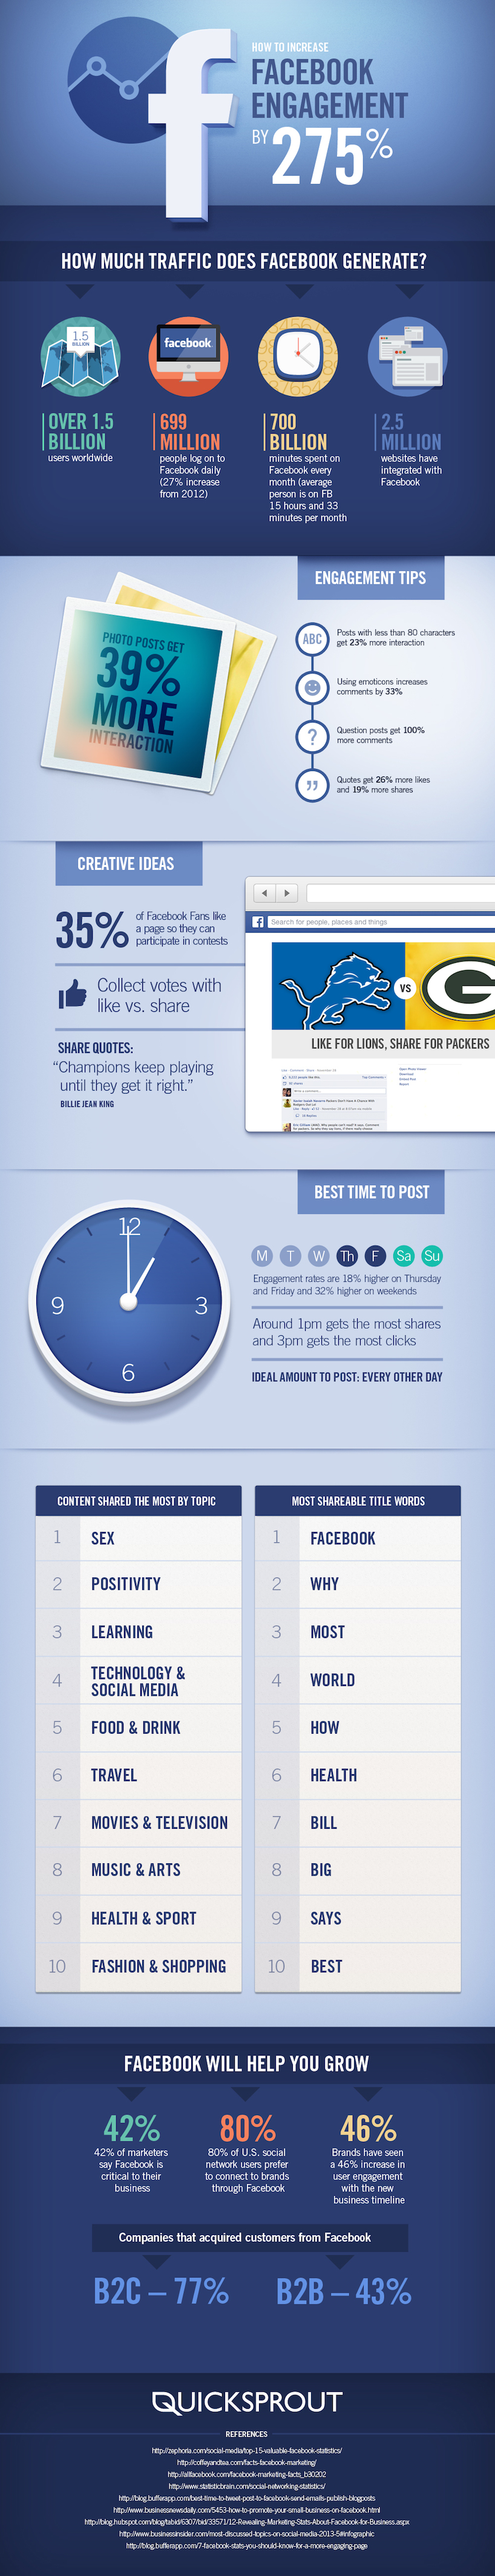 How to Increase Your Facebook Engagement by 275%